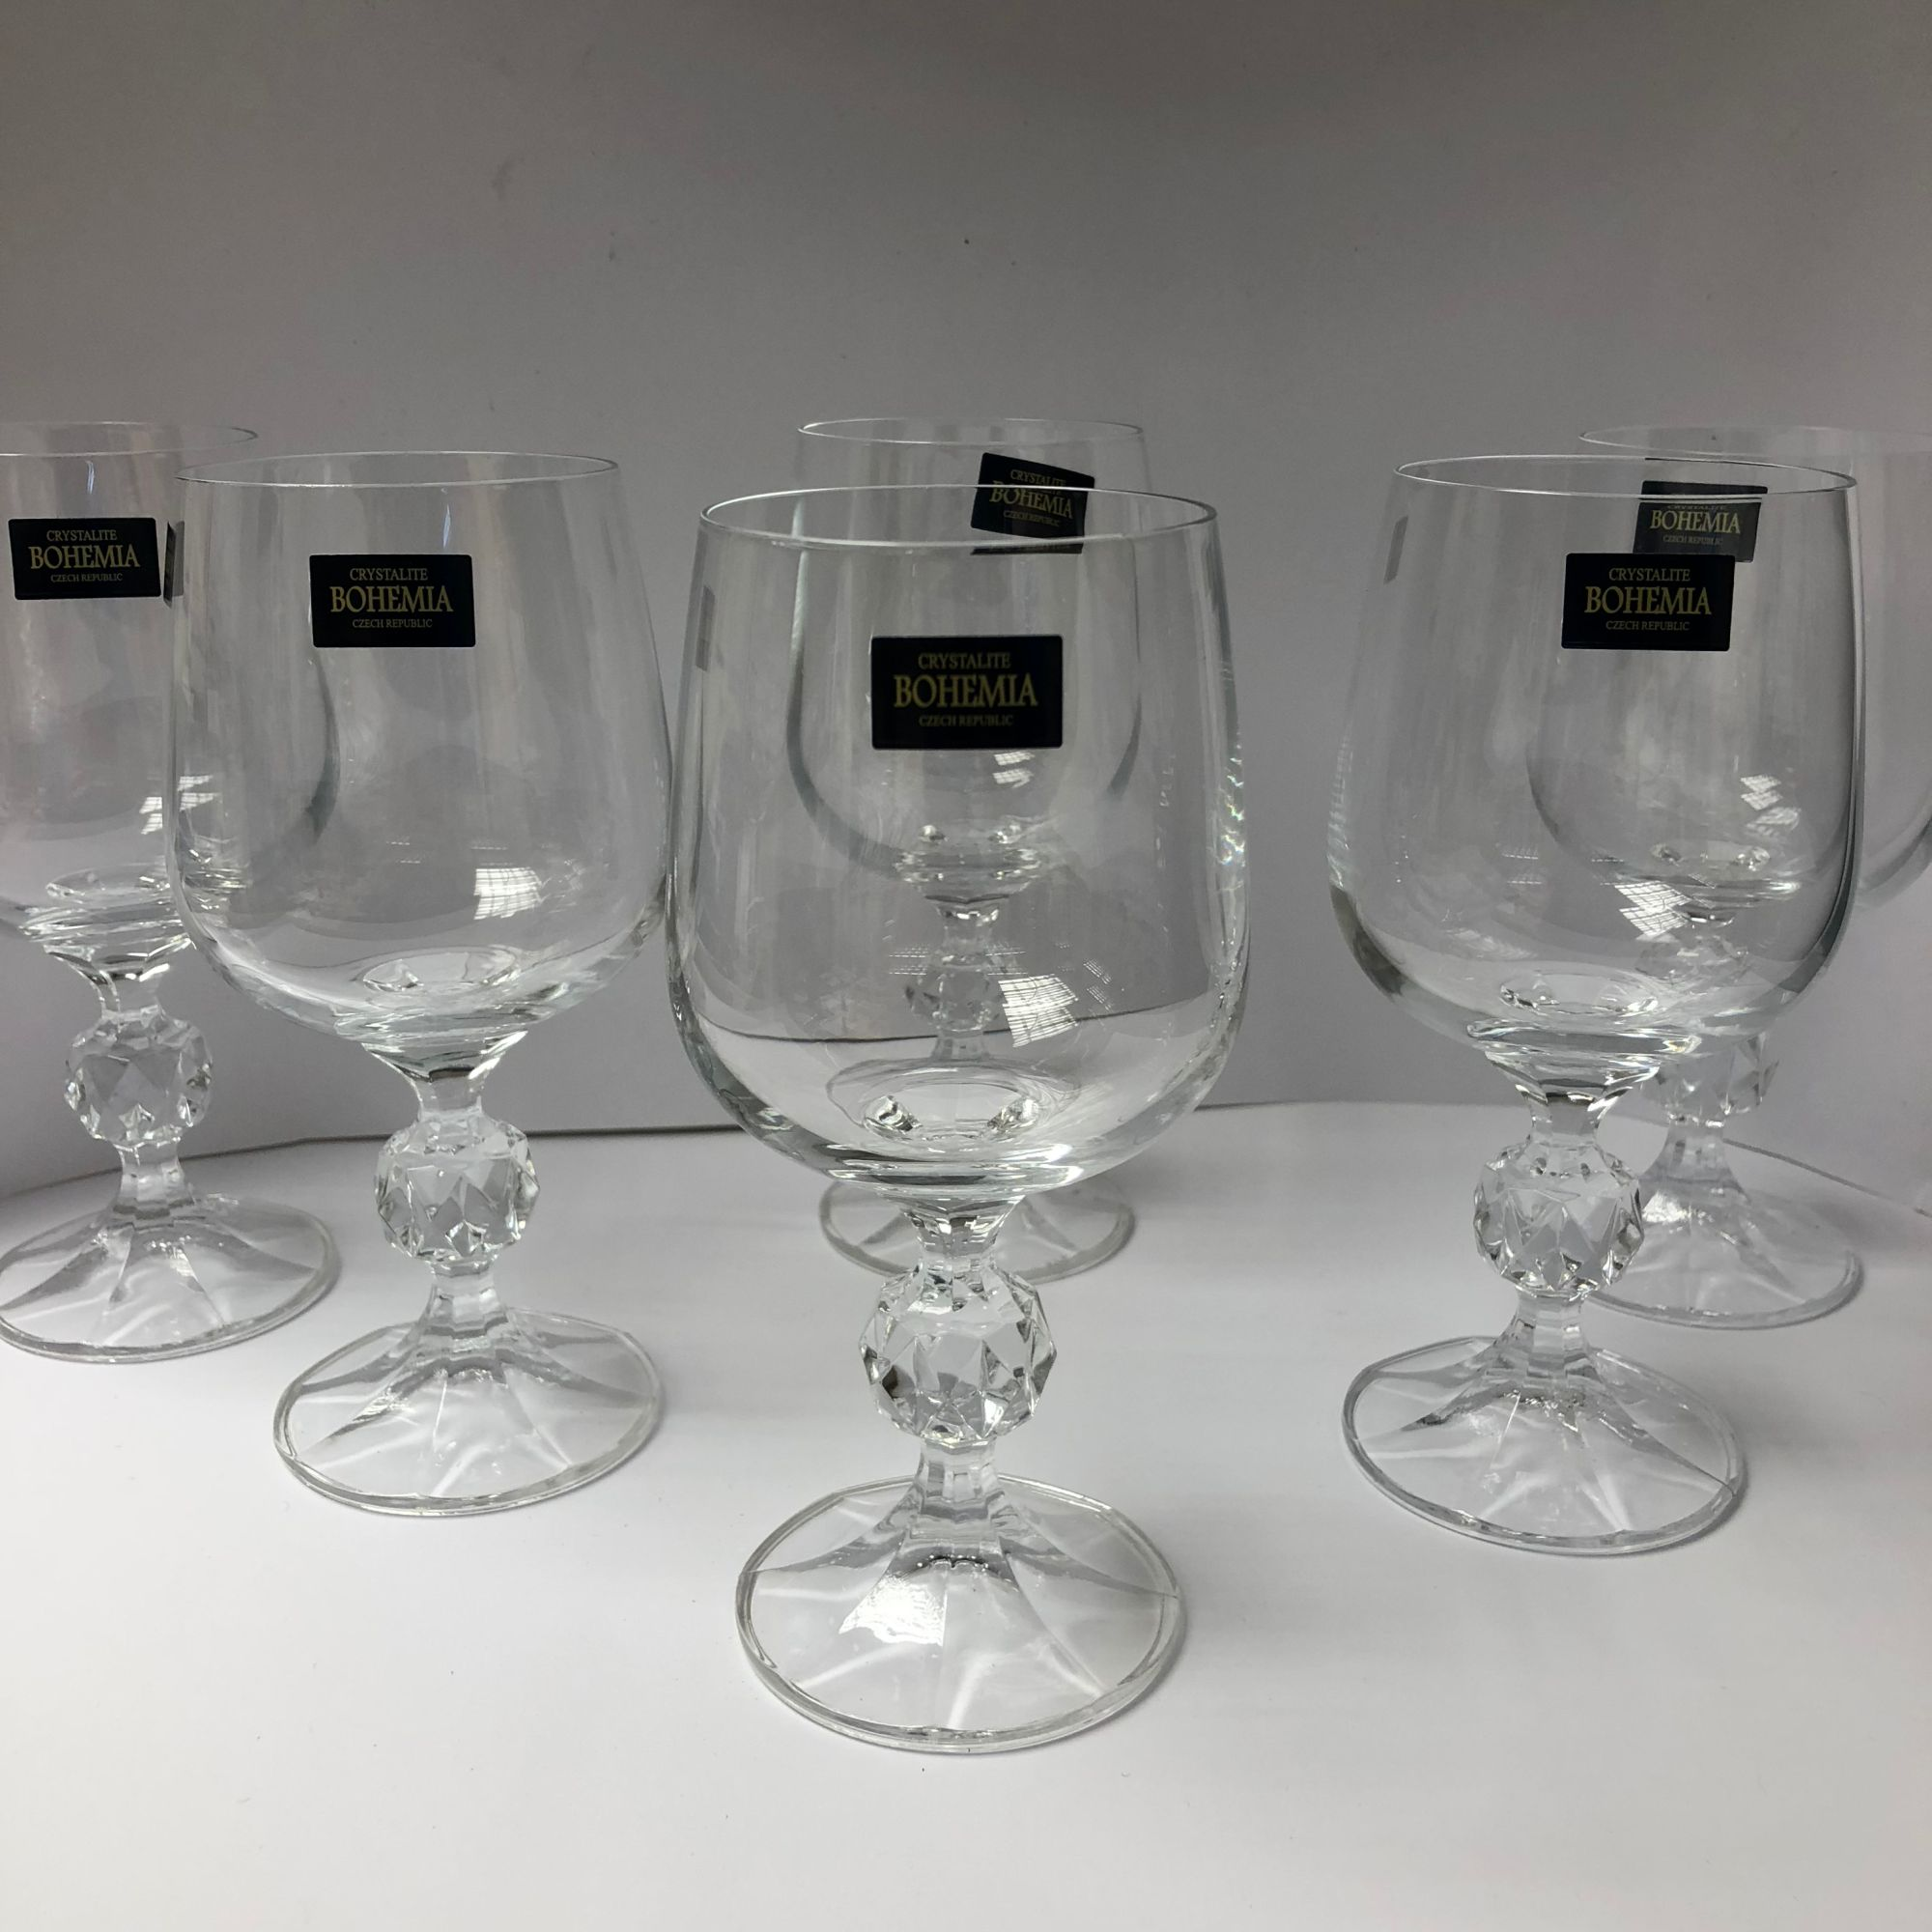 Claudia_230ml_wine_glasses.jpg